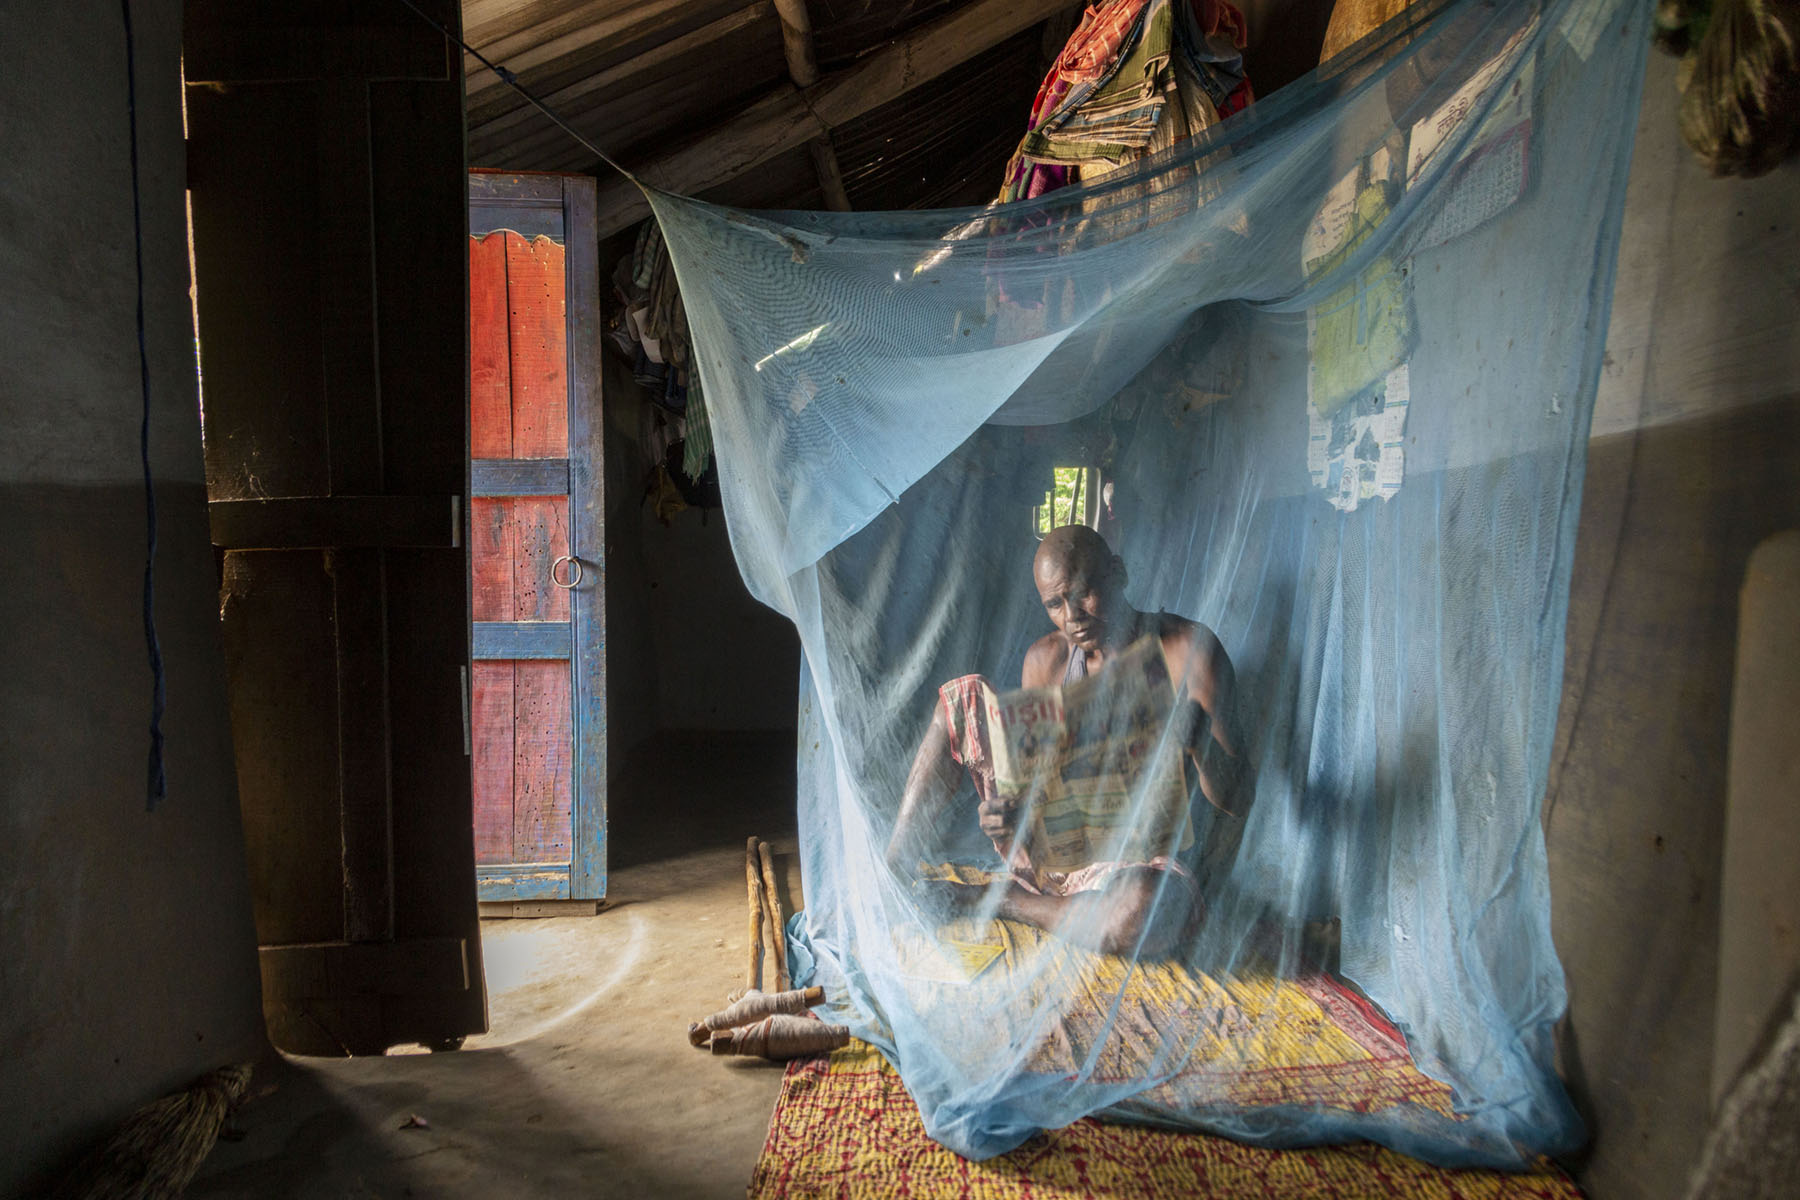 Sunlight comes into a room through an open wooden door painted red, and shines on Suren. He is sitting underneath a light blue mosquito net tied on top of a mattress on the floor. He is reading a Bengali newspaper that he is holding up with both hands.